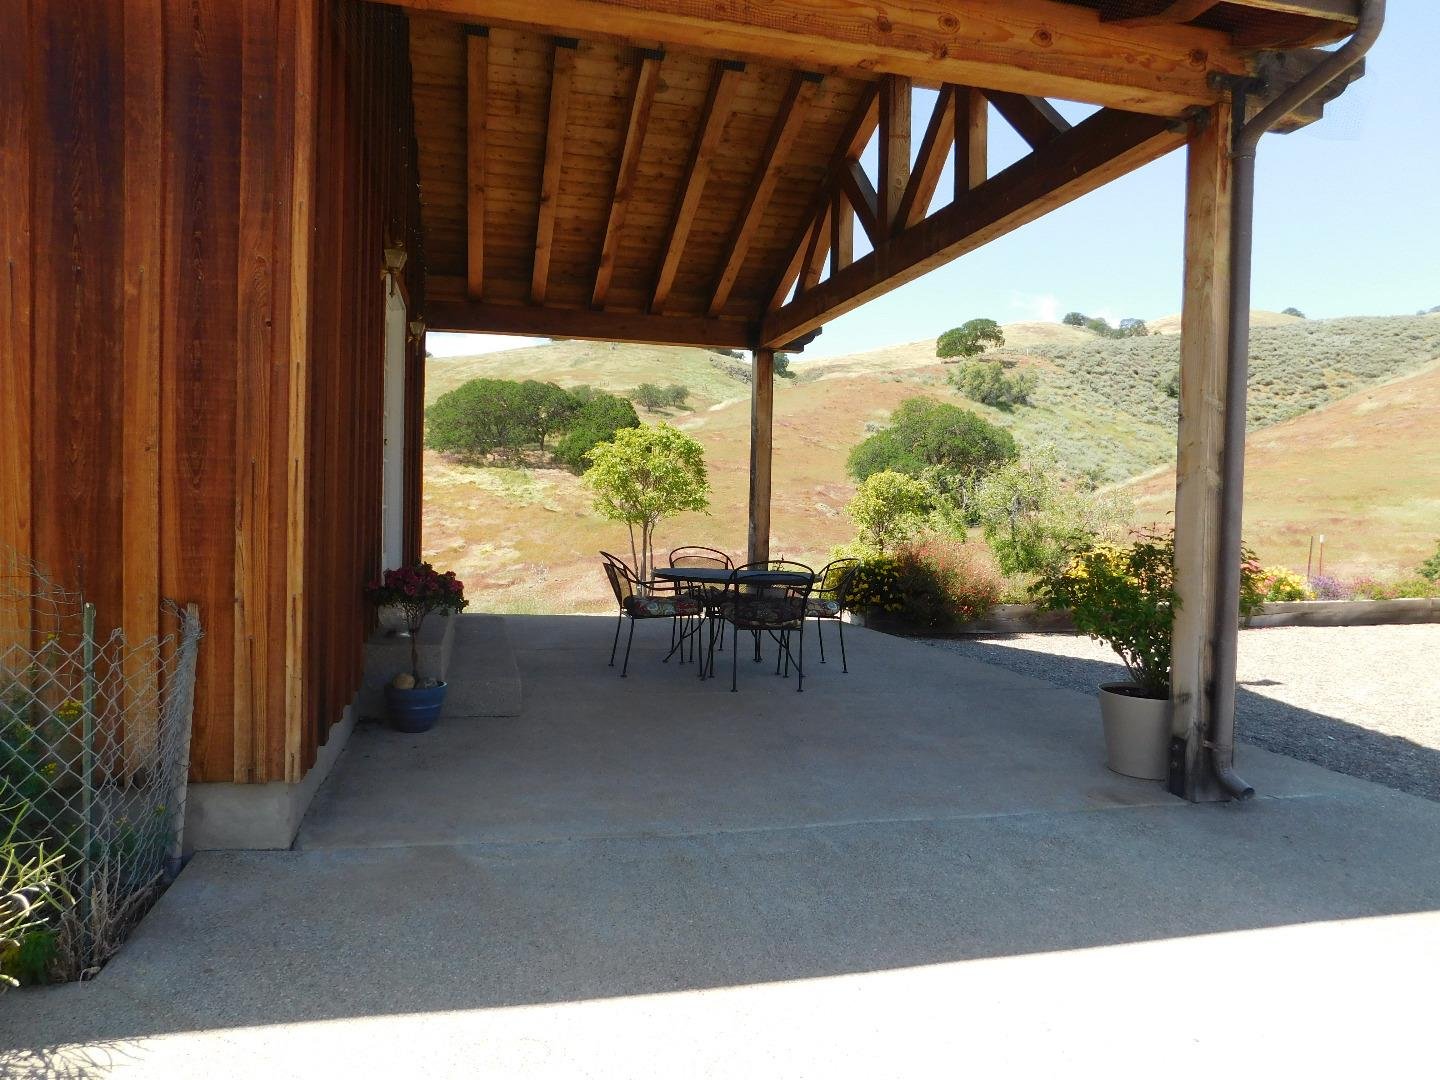 Additional photo for property listing at 20334 Panoche Road  Paicines, California 95043 United States